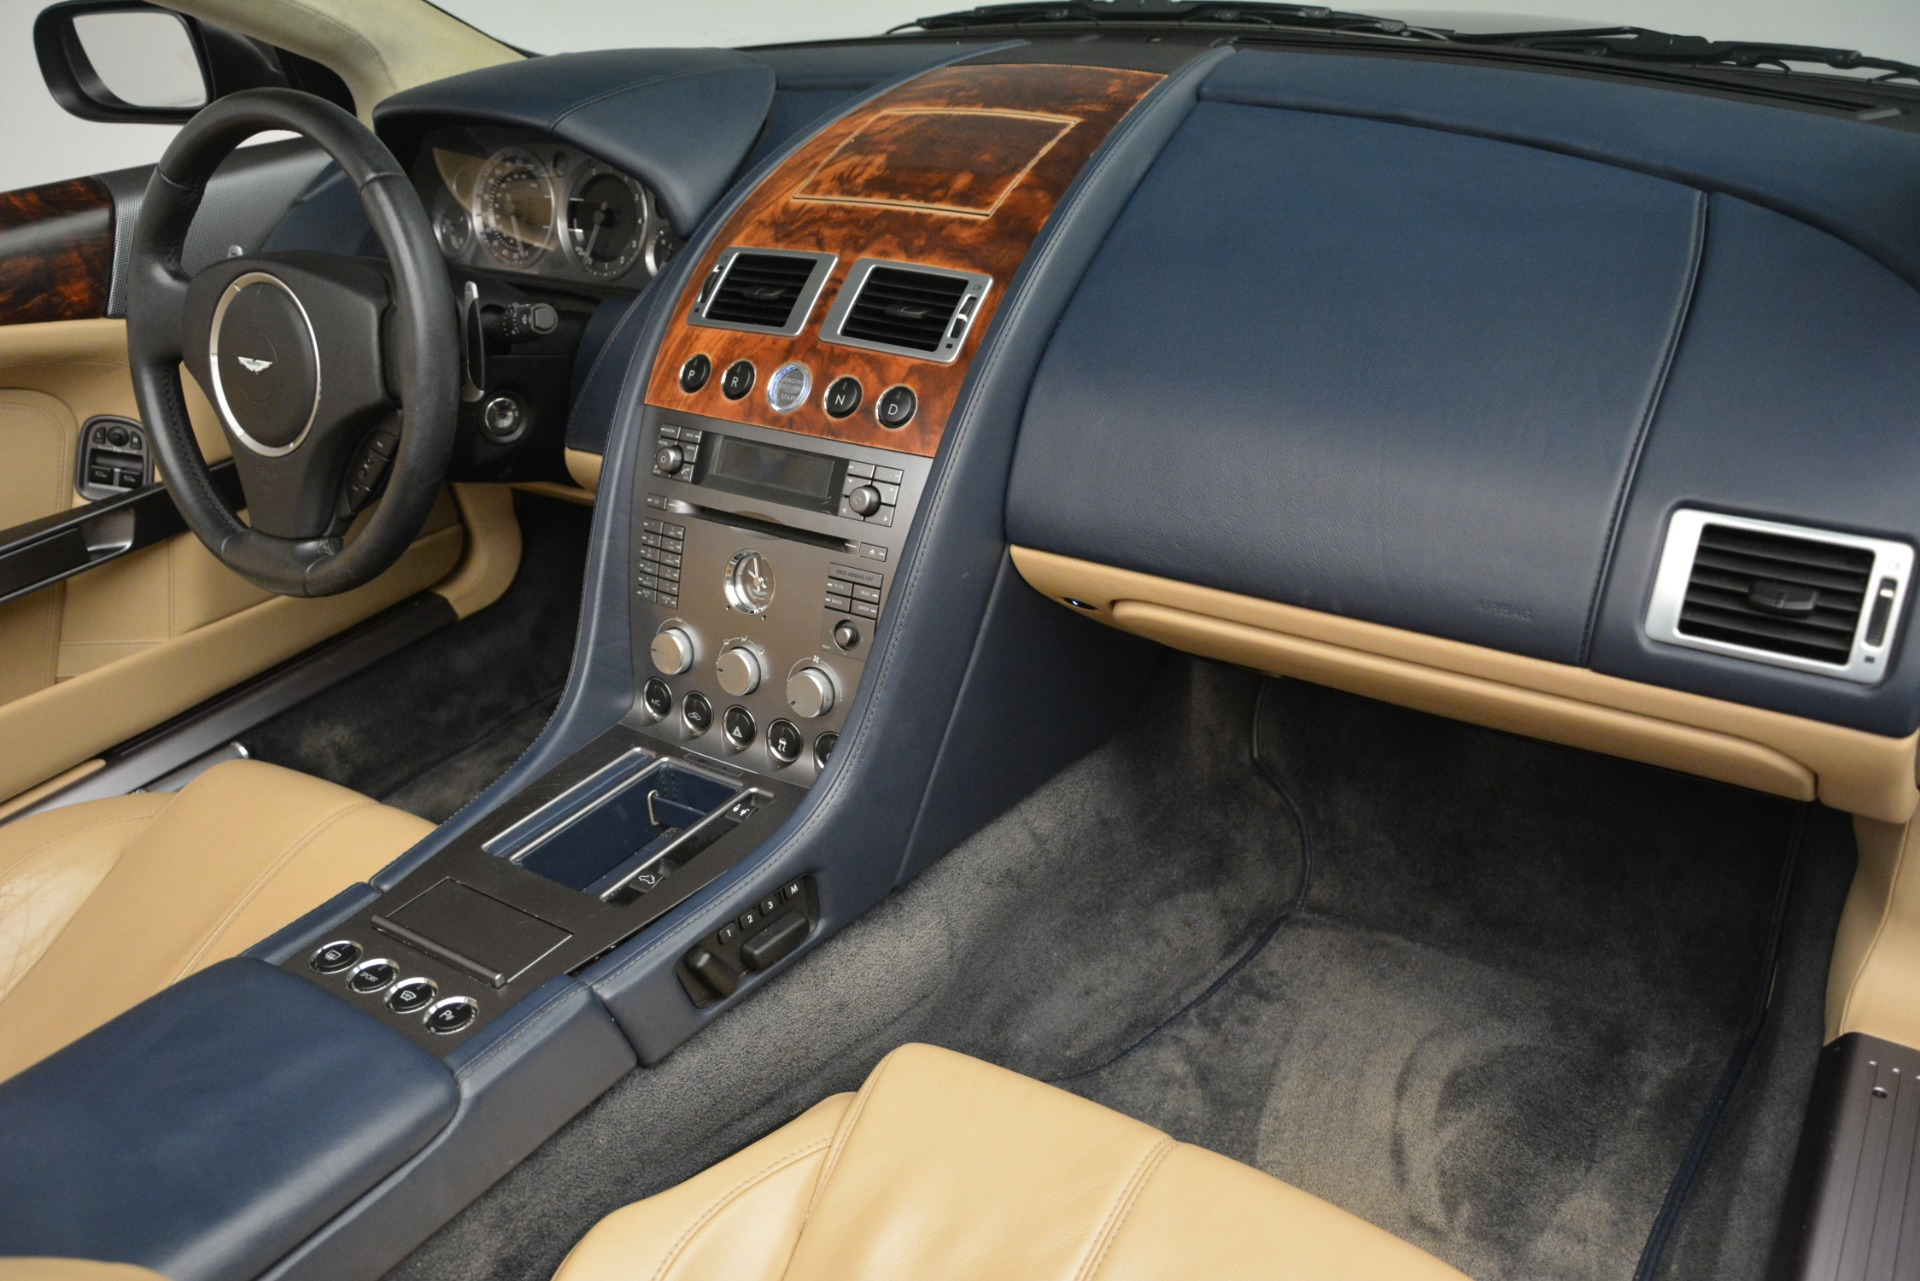 Used 2007 Aston Martin DB9 Convertible For Sale In Westport, CT 3291_p19